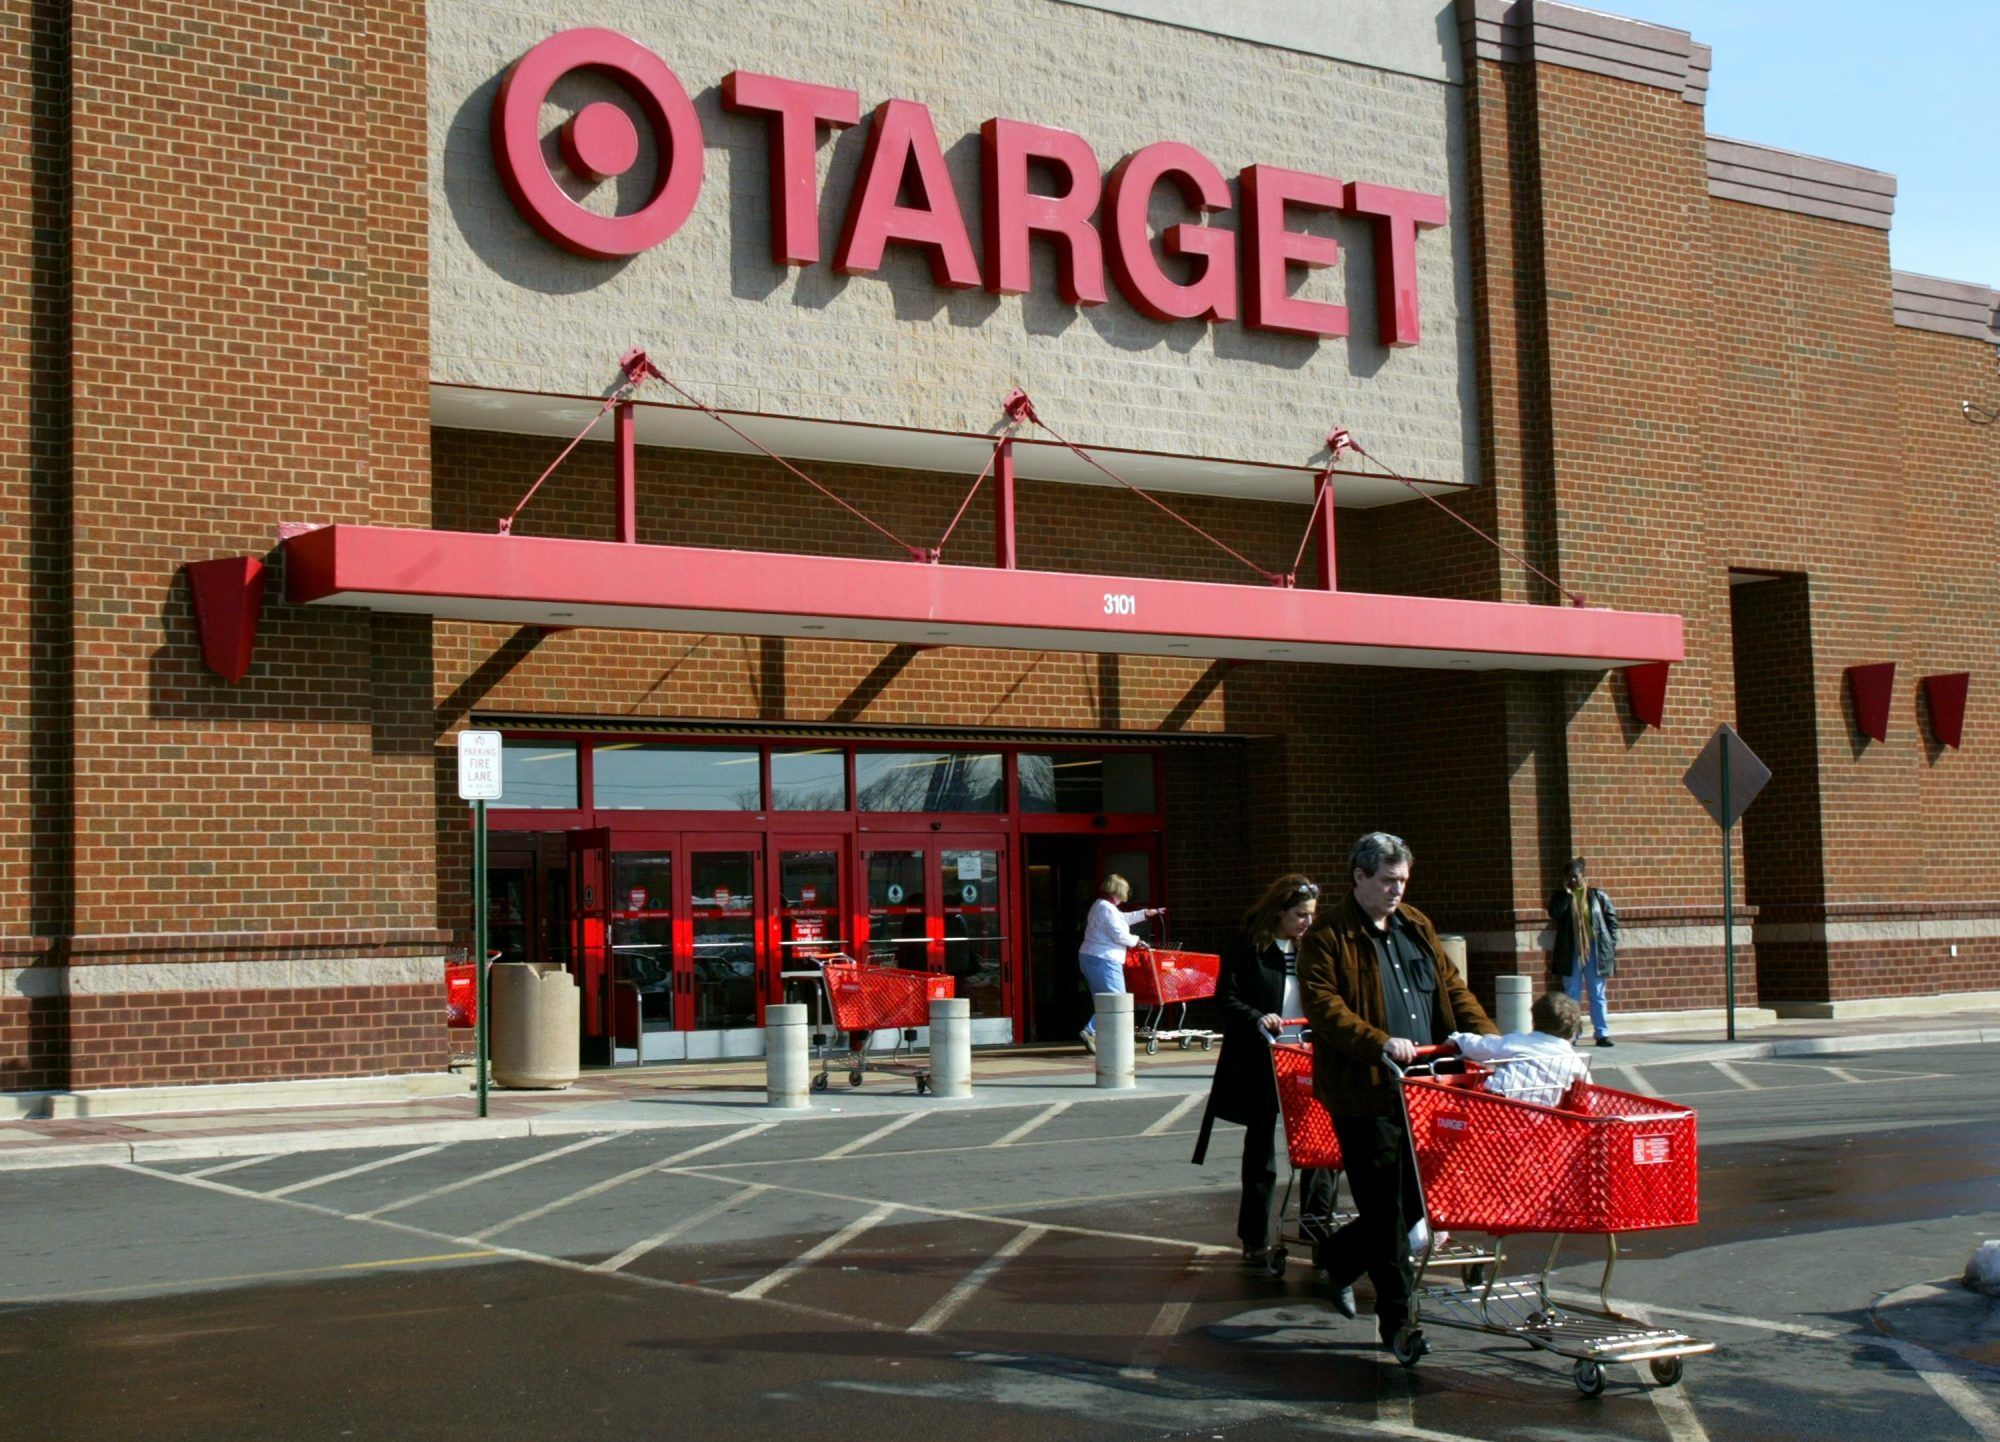 getty-target-store-image